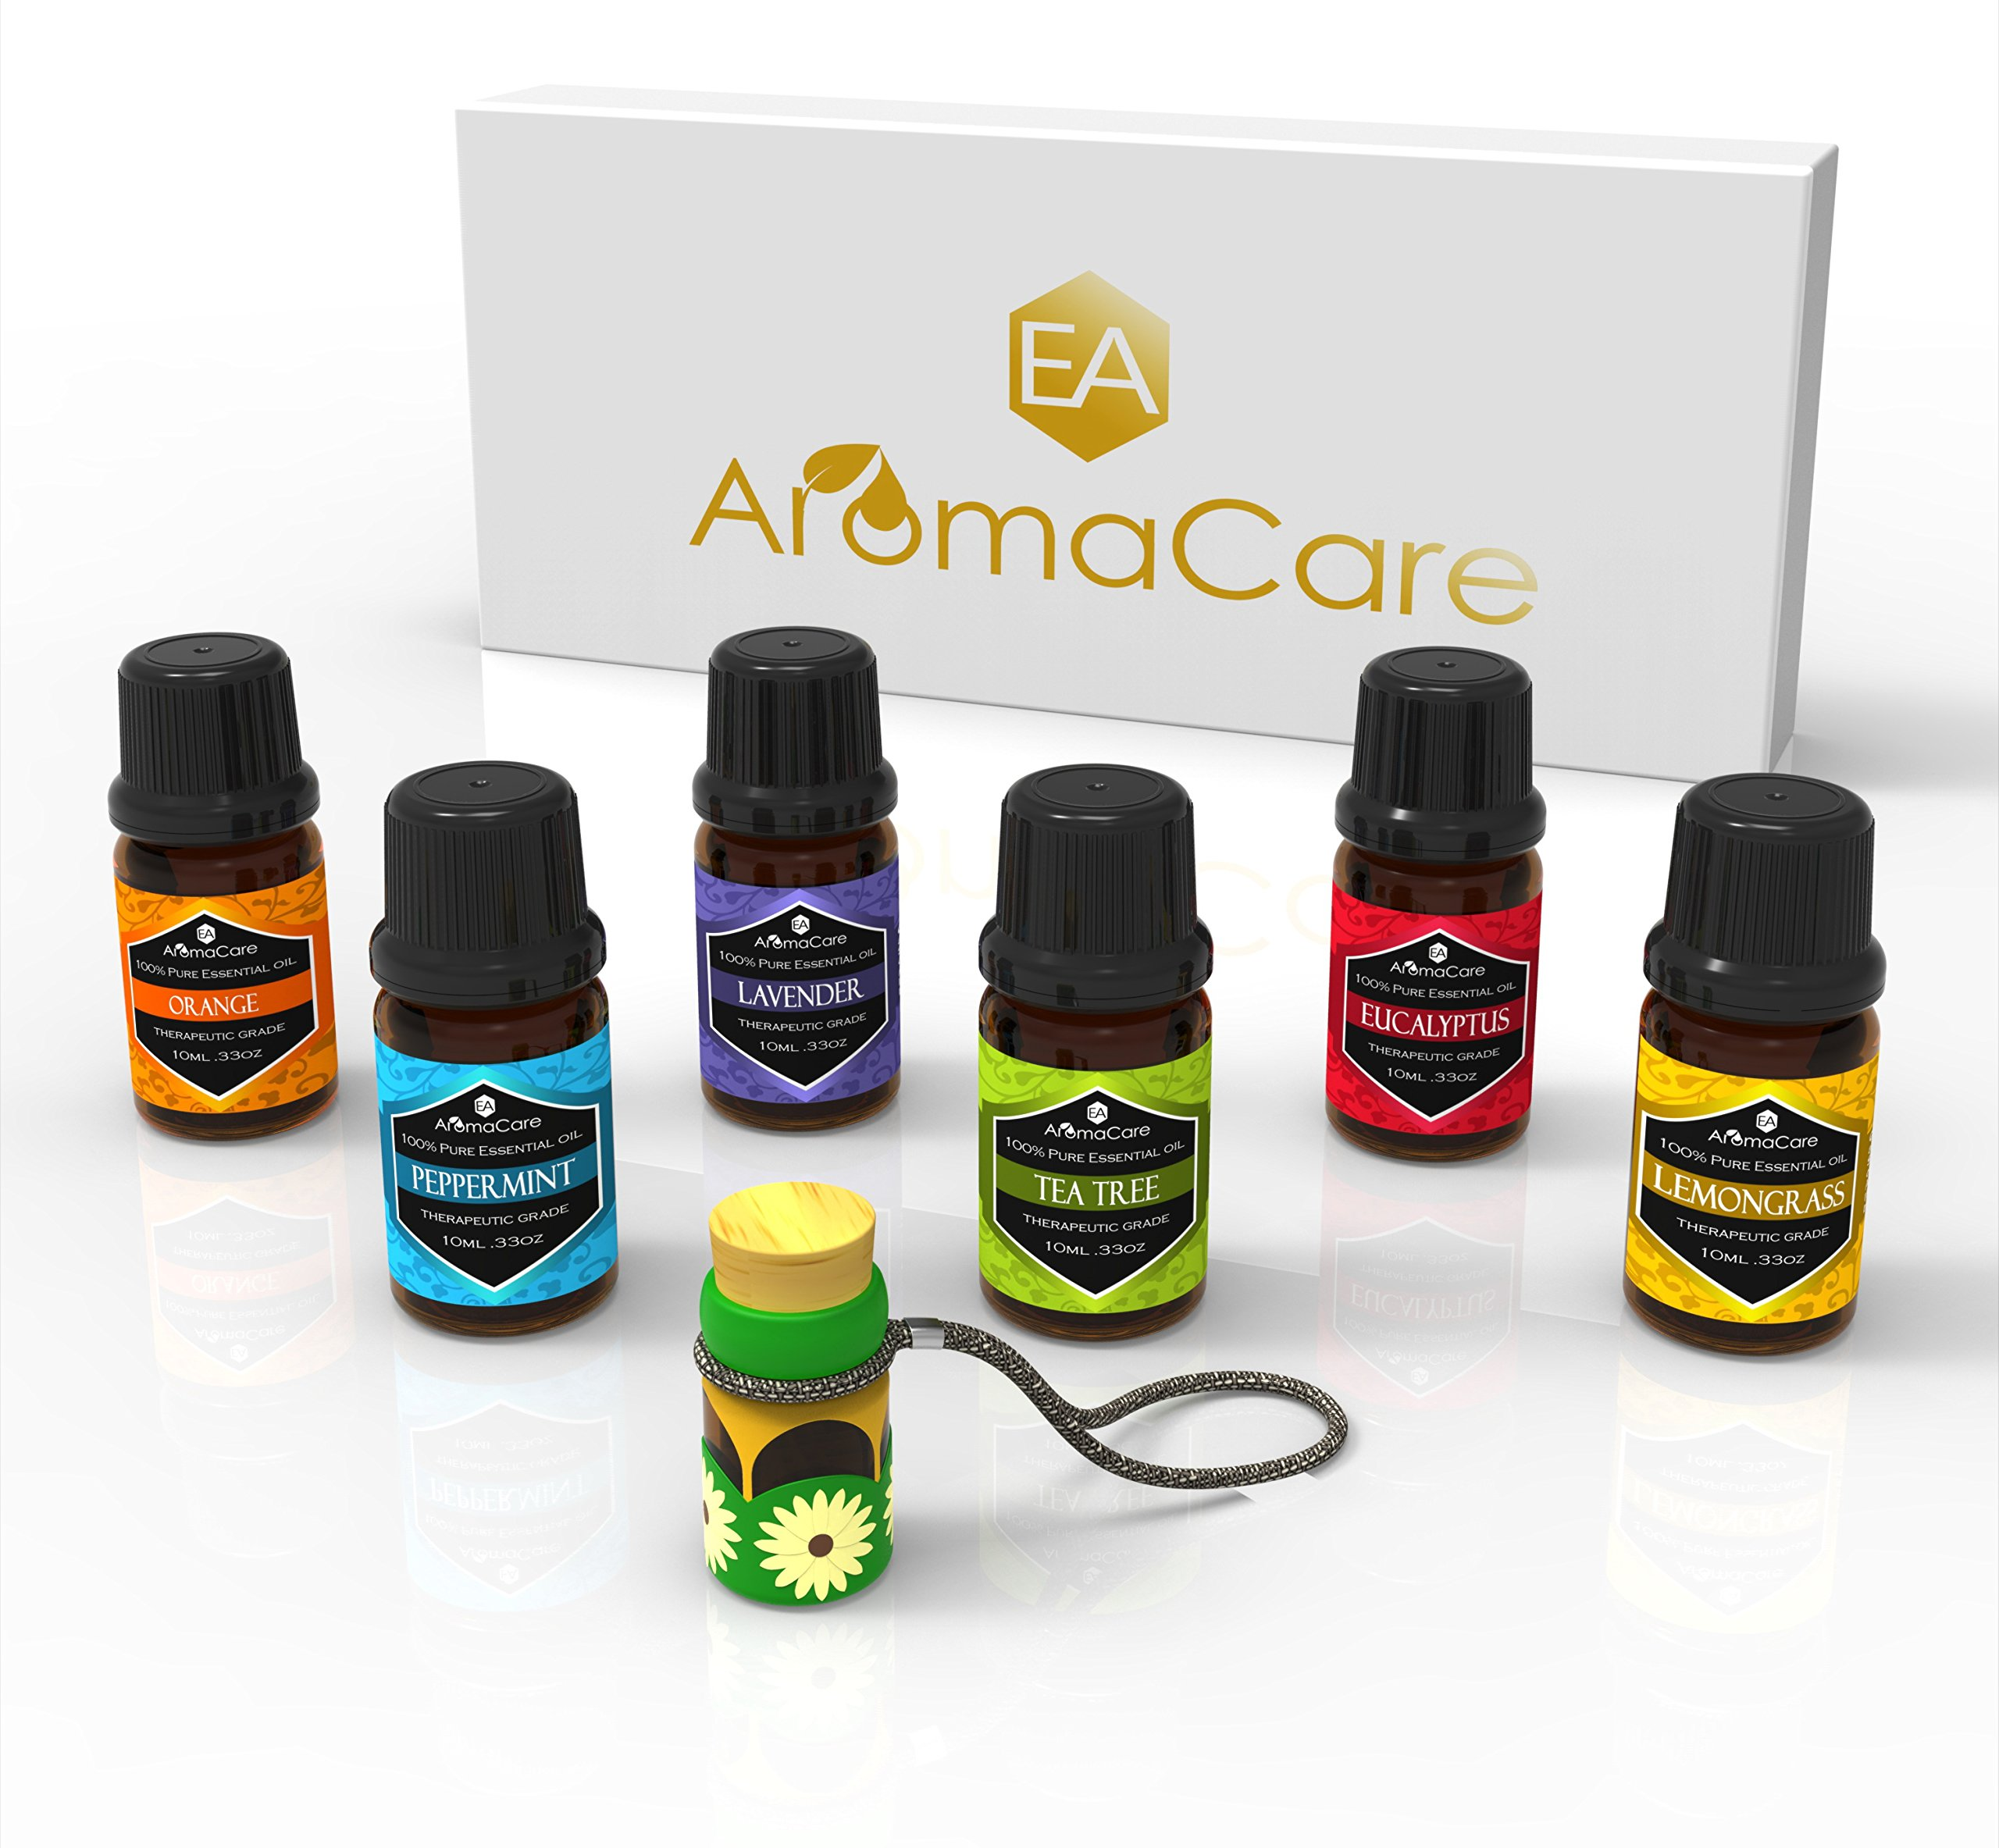 Aromatherapy Essential Oils Gift Set in a EXCLUSIVE WHITE BOX (Lavender, Peppermint, Lemongrass, TeaTree, Eucalyptus, Bergamot) FREE Essential Oil Pendant and ebook